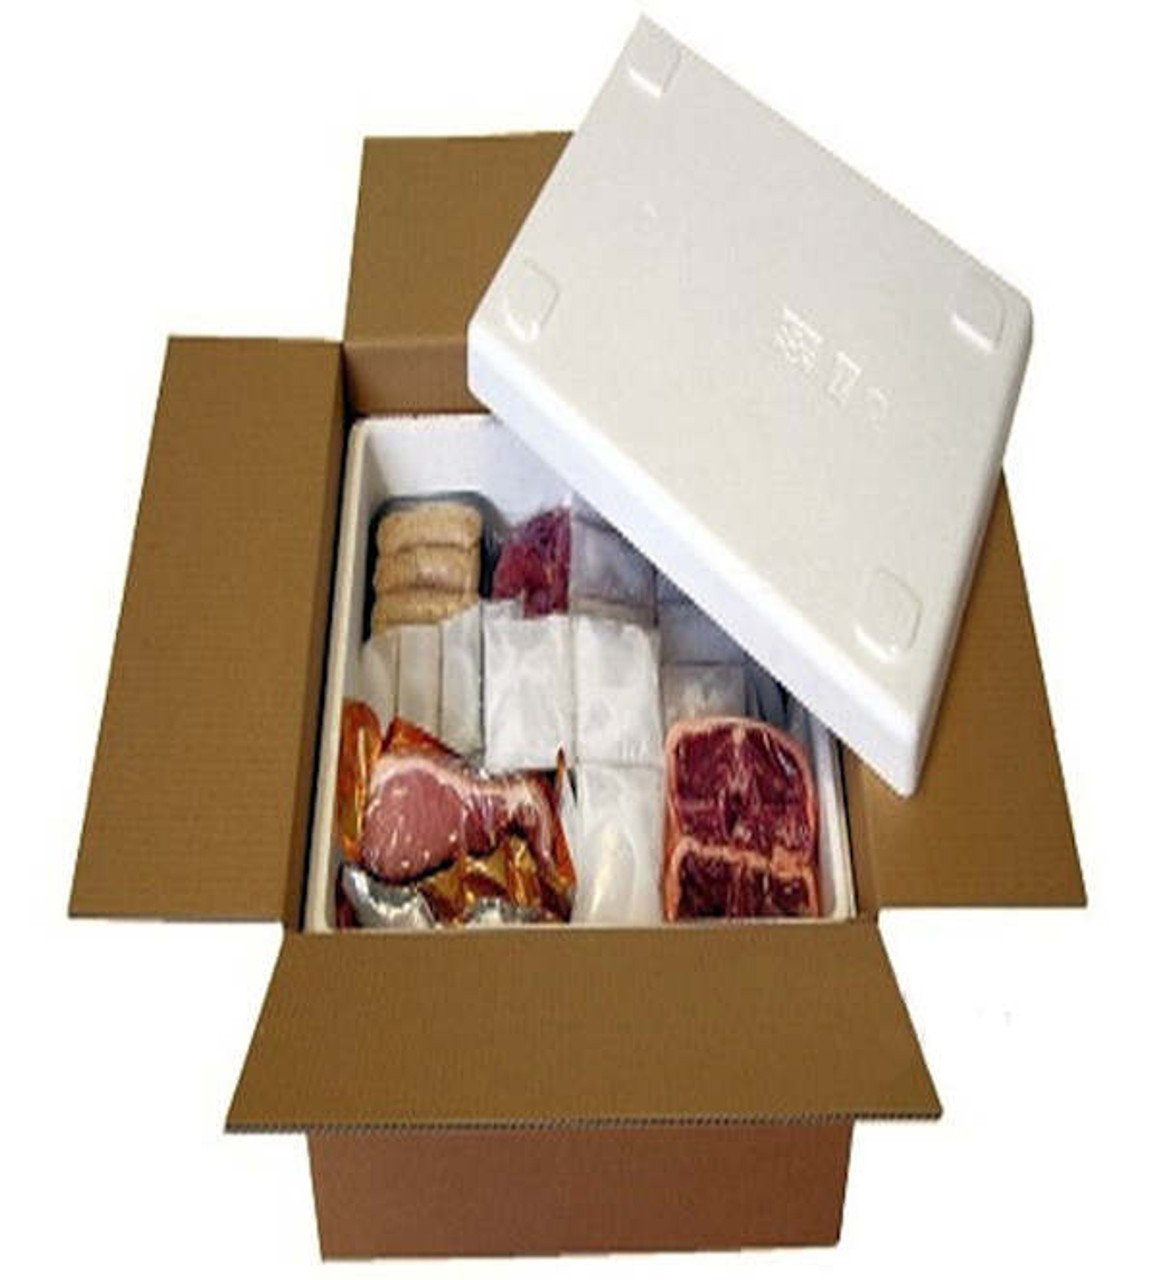 Polystyrene Takeaway Boxes Large Burger Box   Pack of 100  Fast Despatch